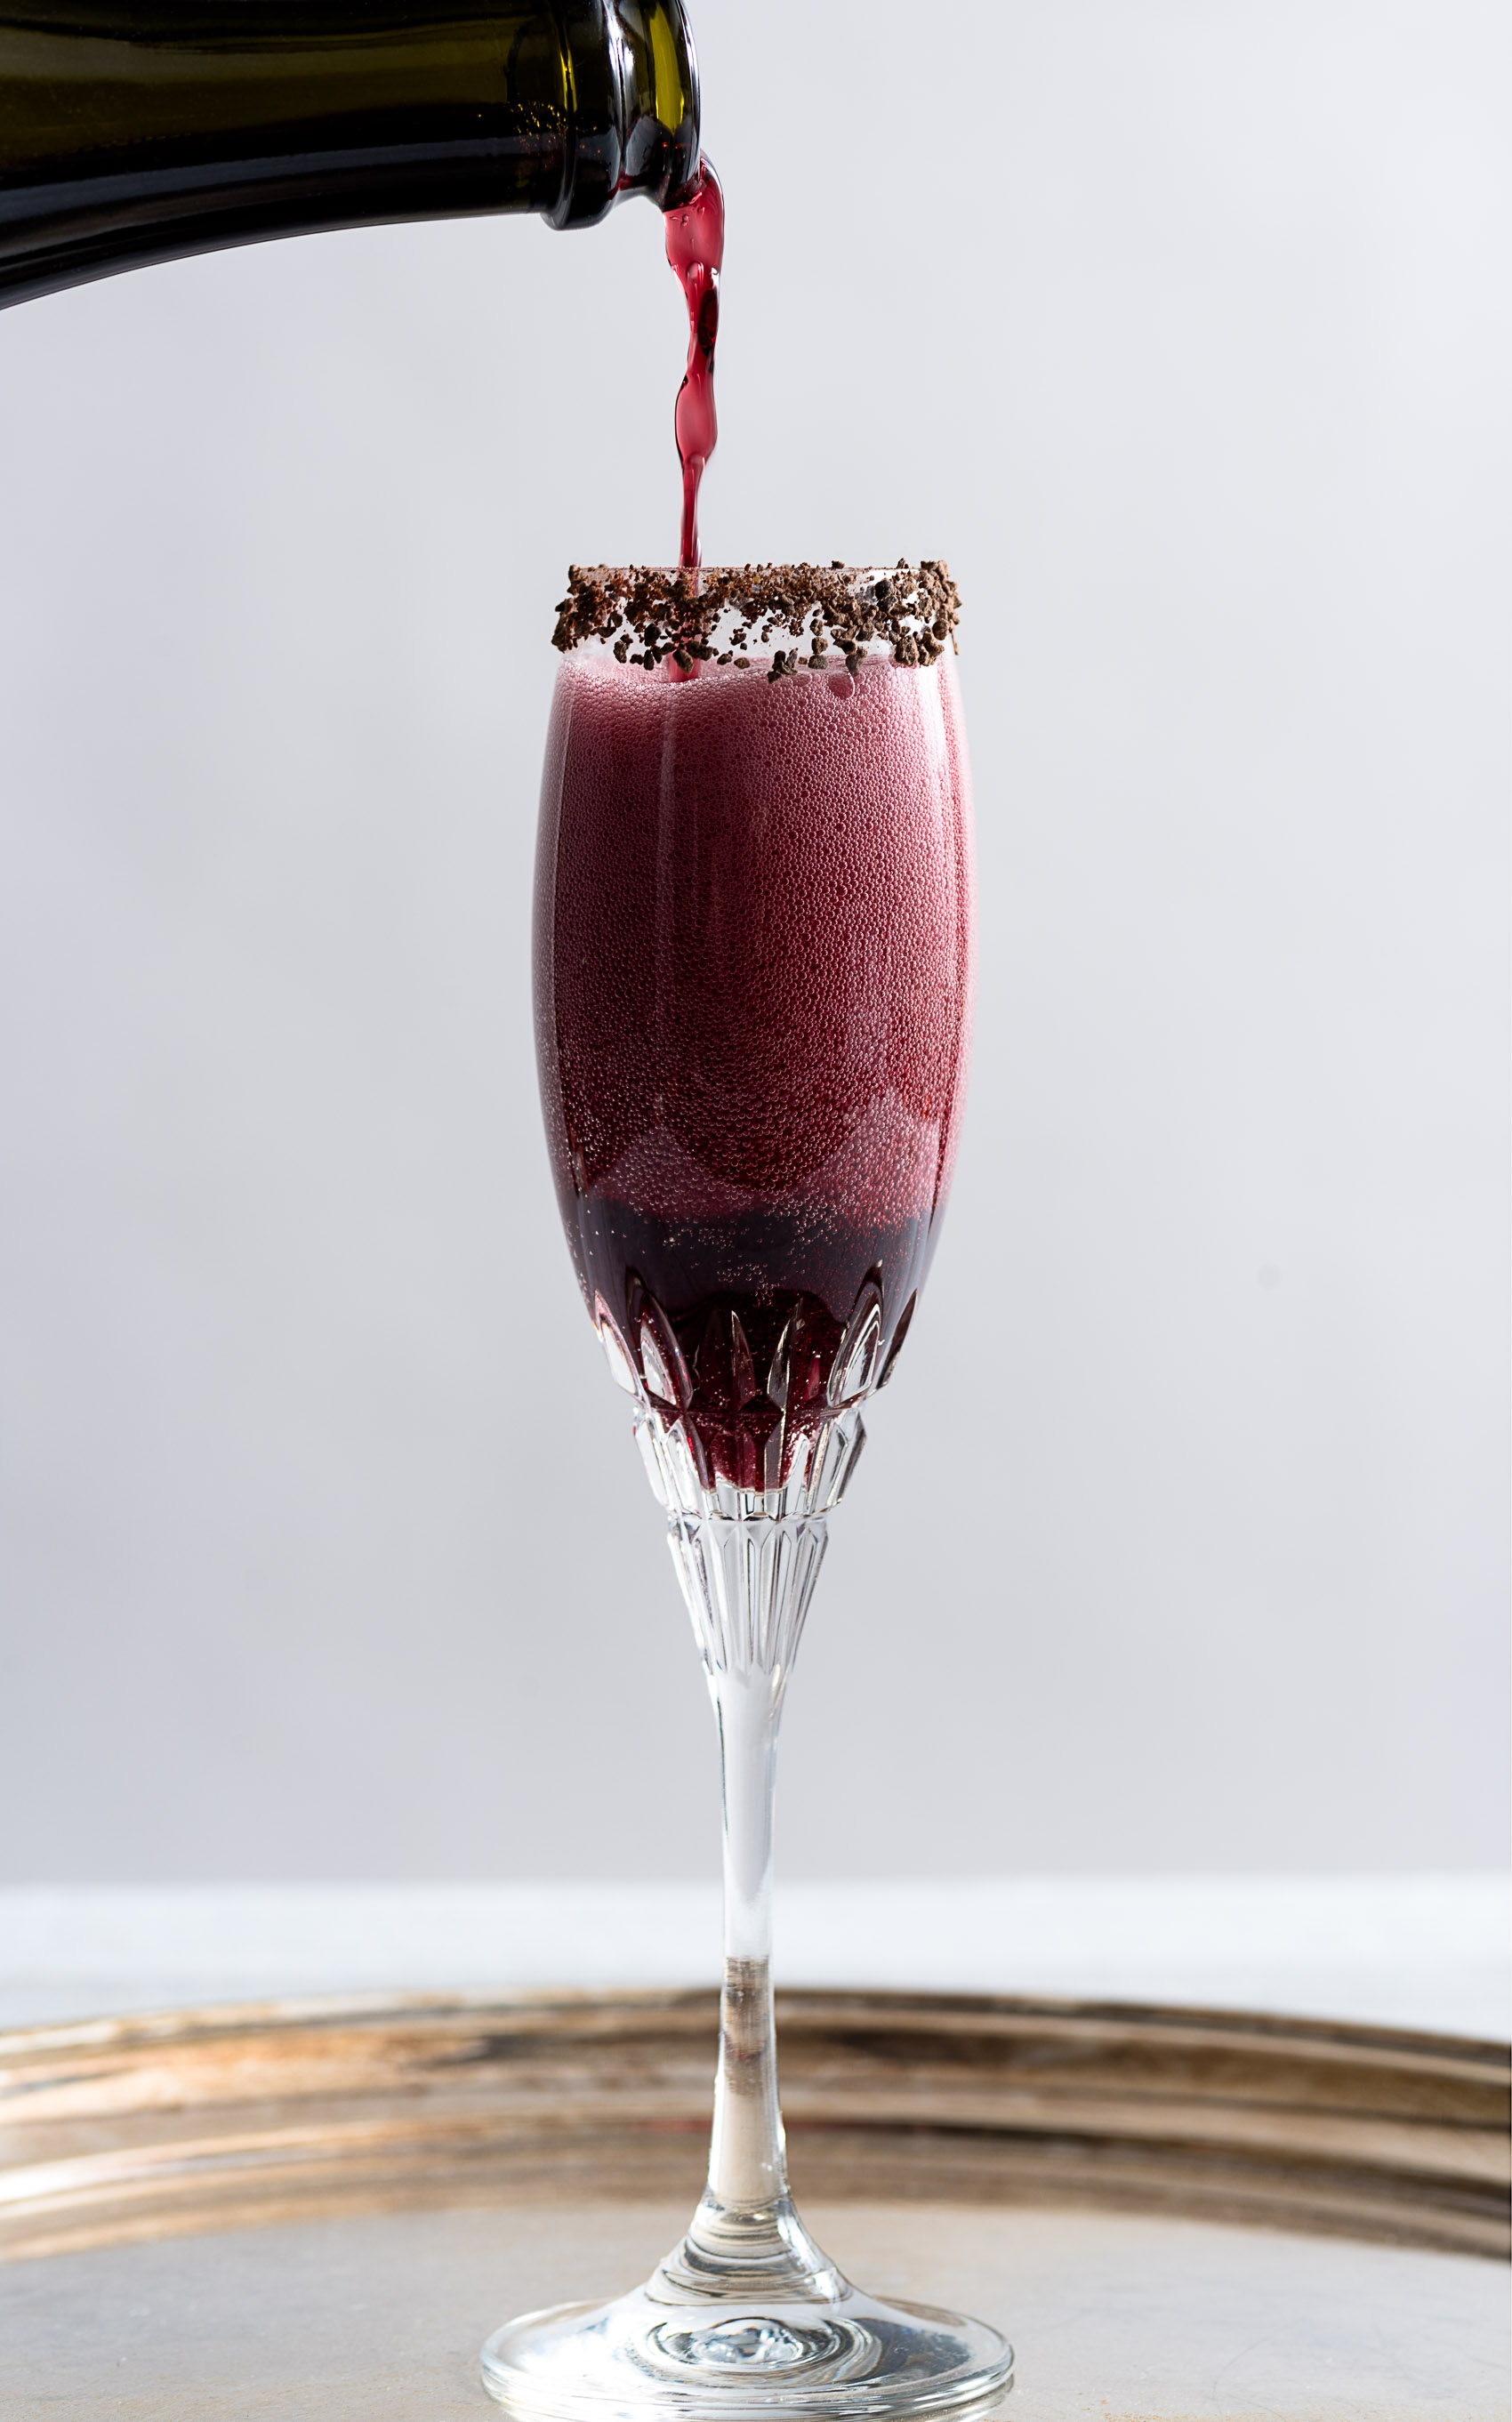 Sparkling Shiraz Cocktail with Dark Chocolate Coated Cacao Nibs from Nomageddon. Get the recipe here. -